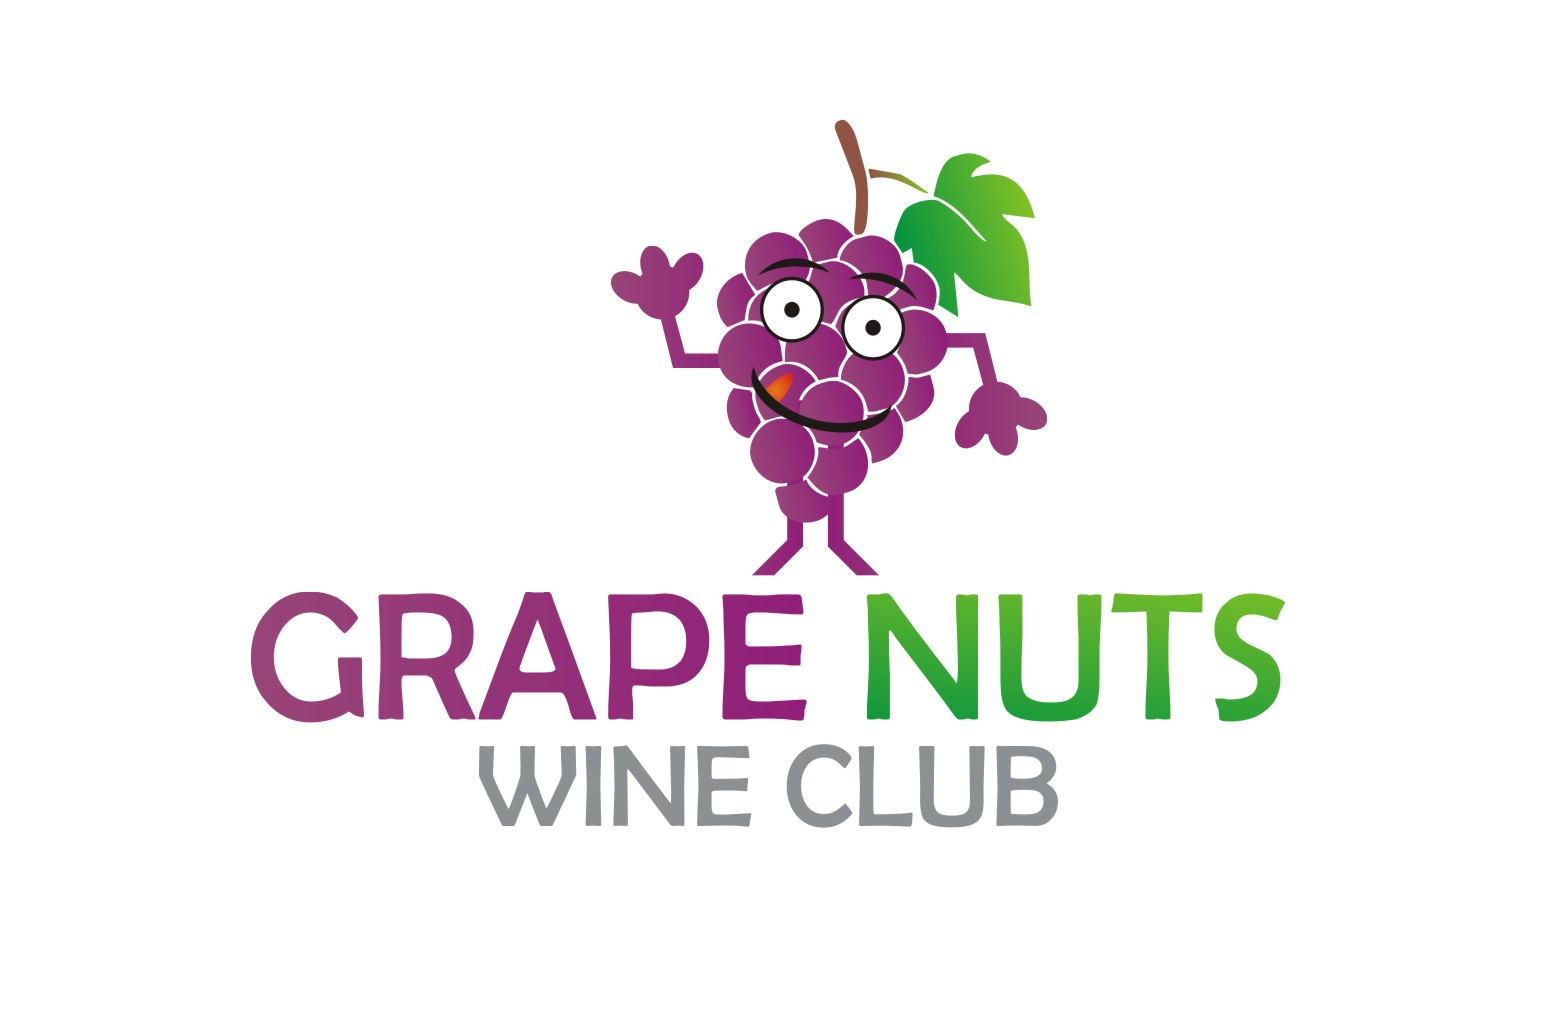 Logo Design by Yuda Hermawan - Entry No. 19 in the Logo Design Contest Artistic Logo Design for Grape Nuts Wine Club.